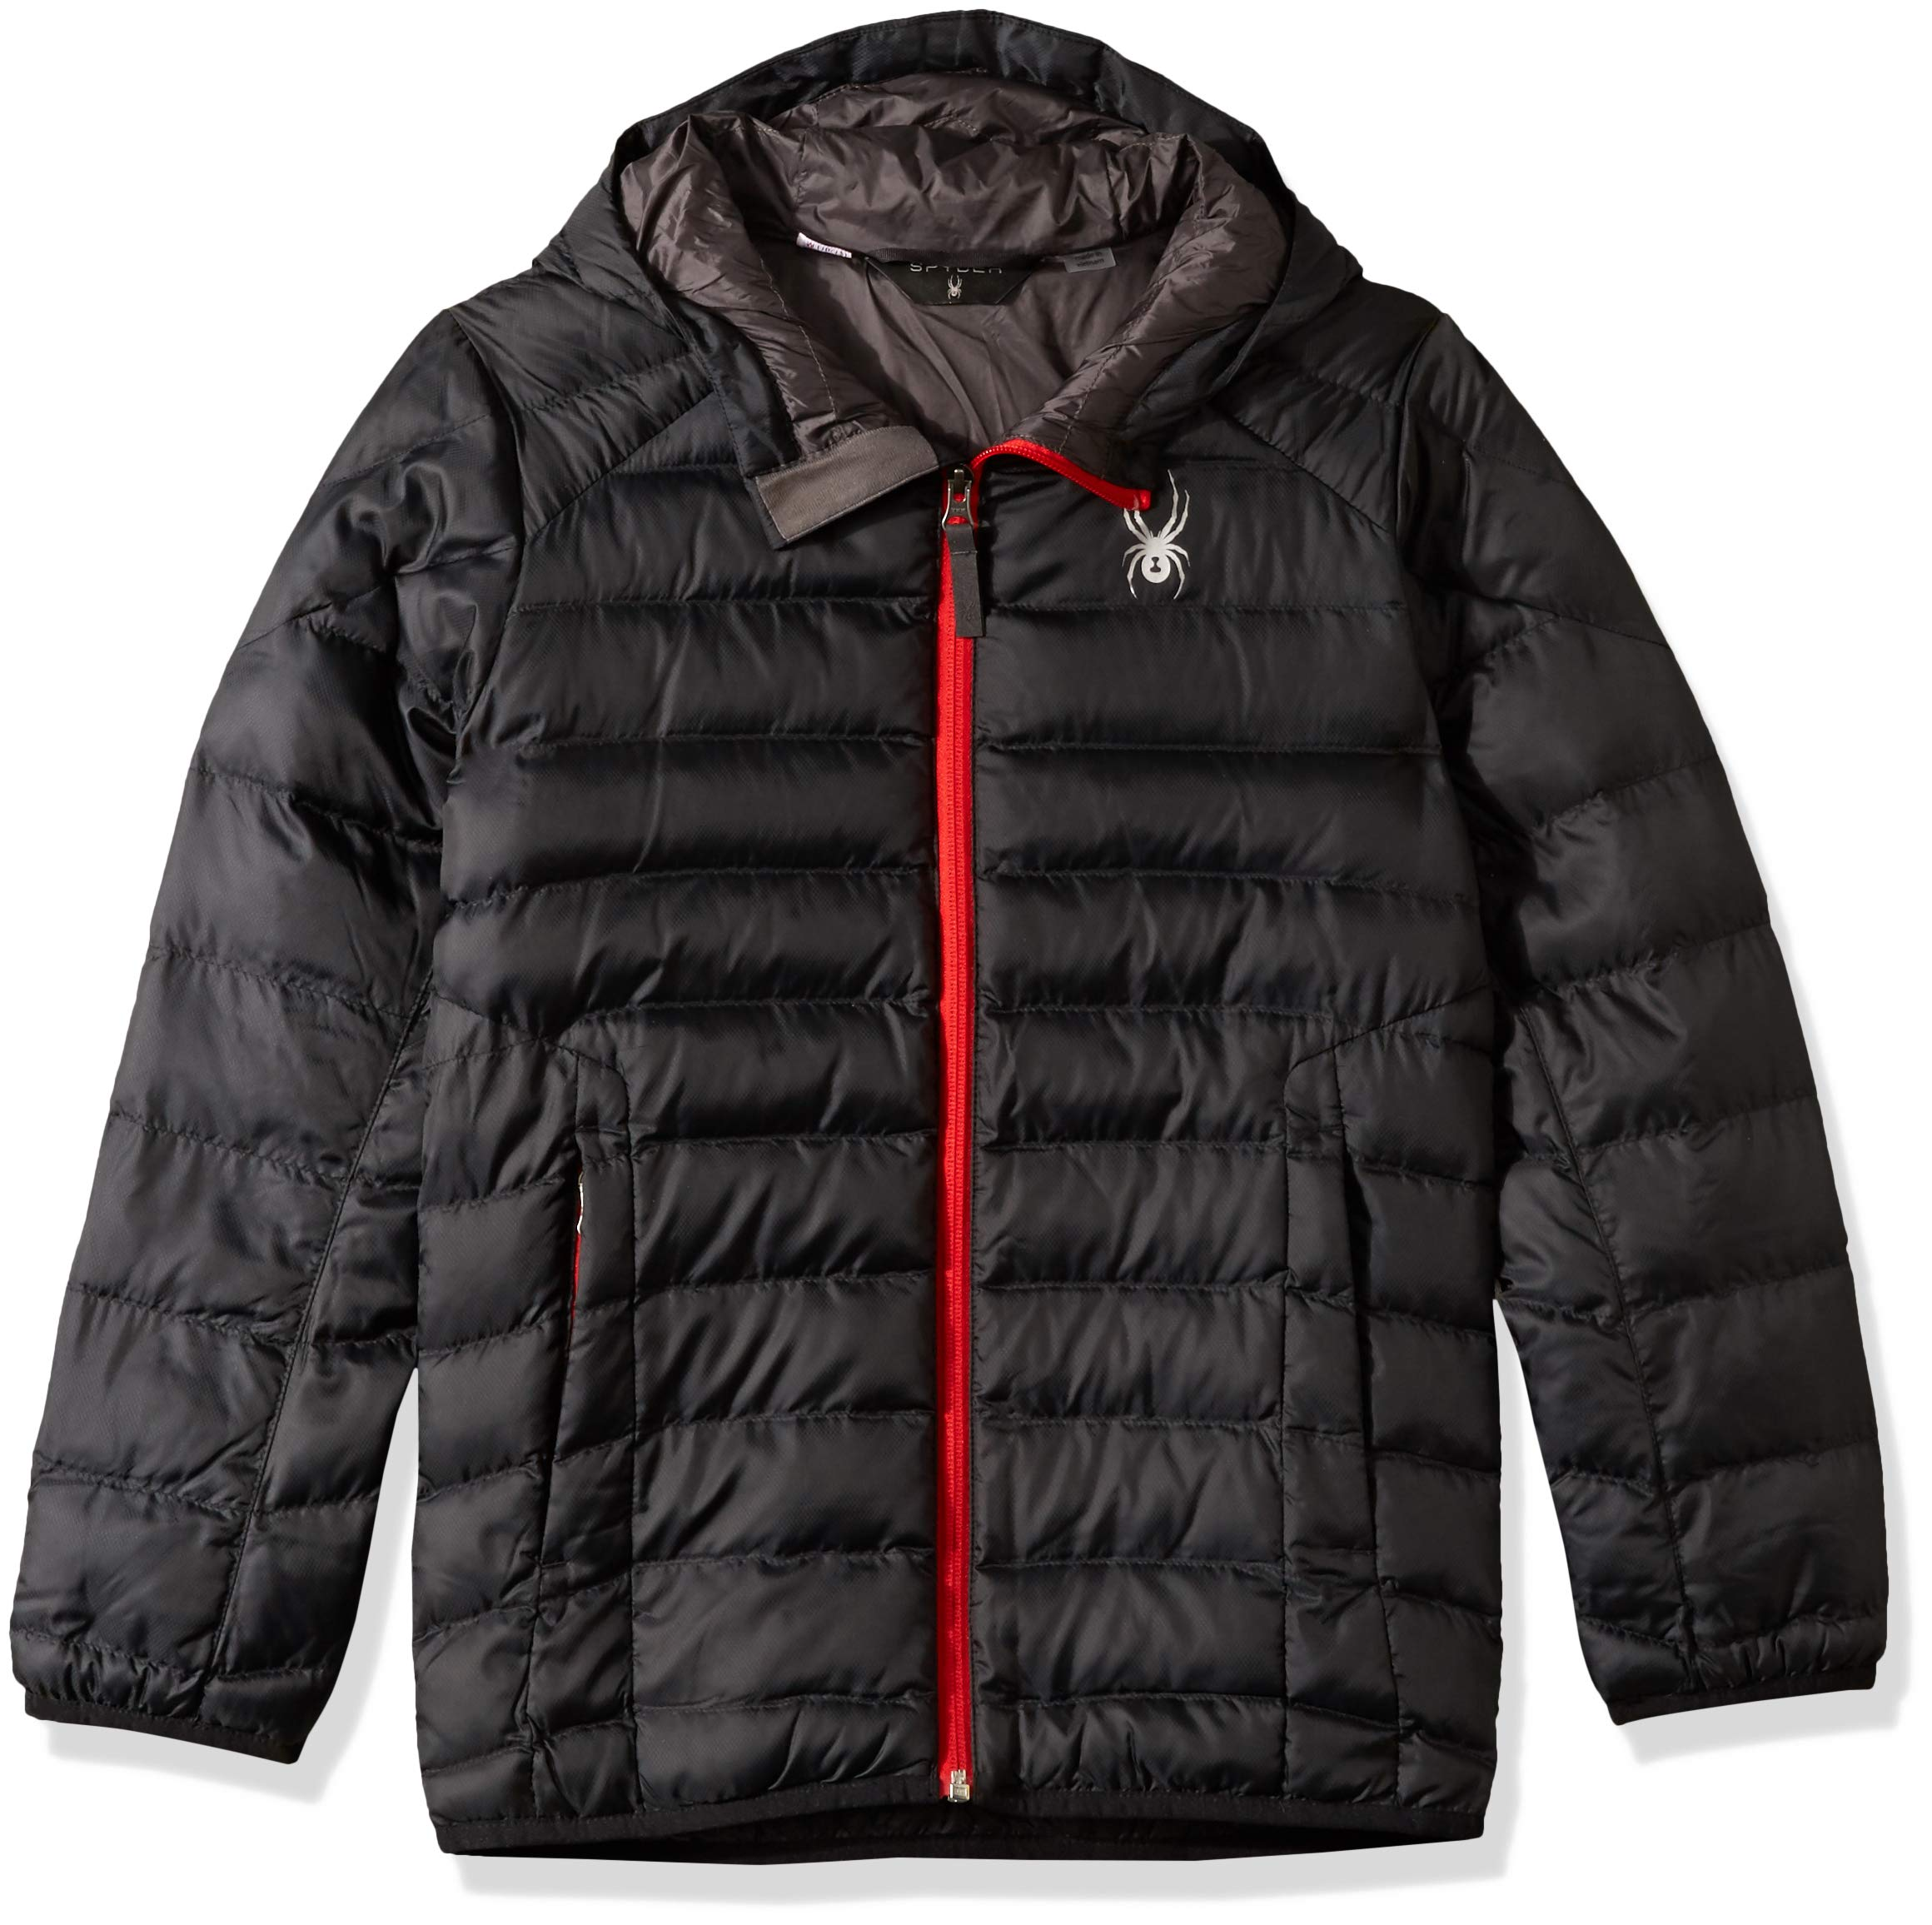 Spyder Boys' Geared Hoody Synthetic Down Jacket, Black/Black/Red, Large